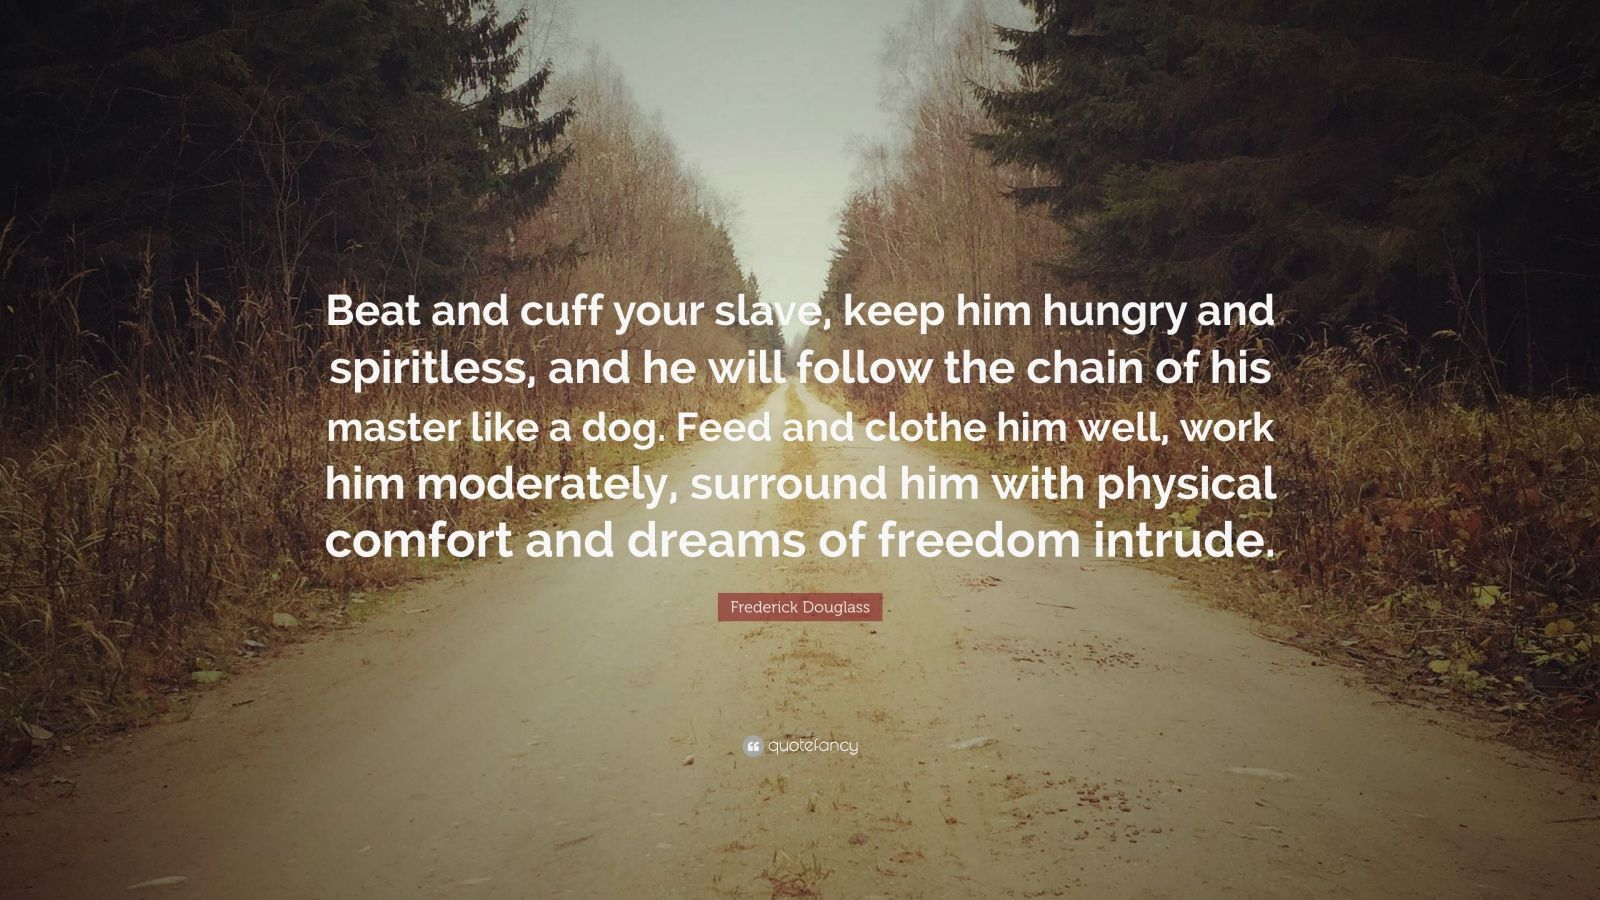 """Frederick Douglass Quote: """"Beat and cuff your slave, keep him hungry and spiritless, and he will follow the chain of his master like a dog. Feed and clothe him well, work him moderately, surround him with physical comfort and dreams of freedom intrude."""""""